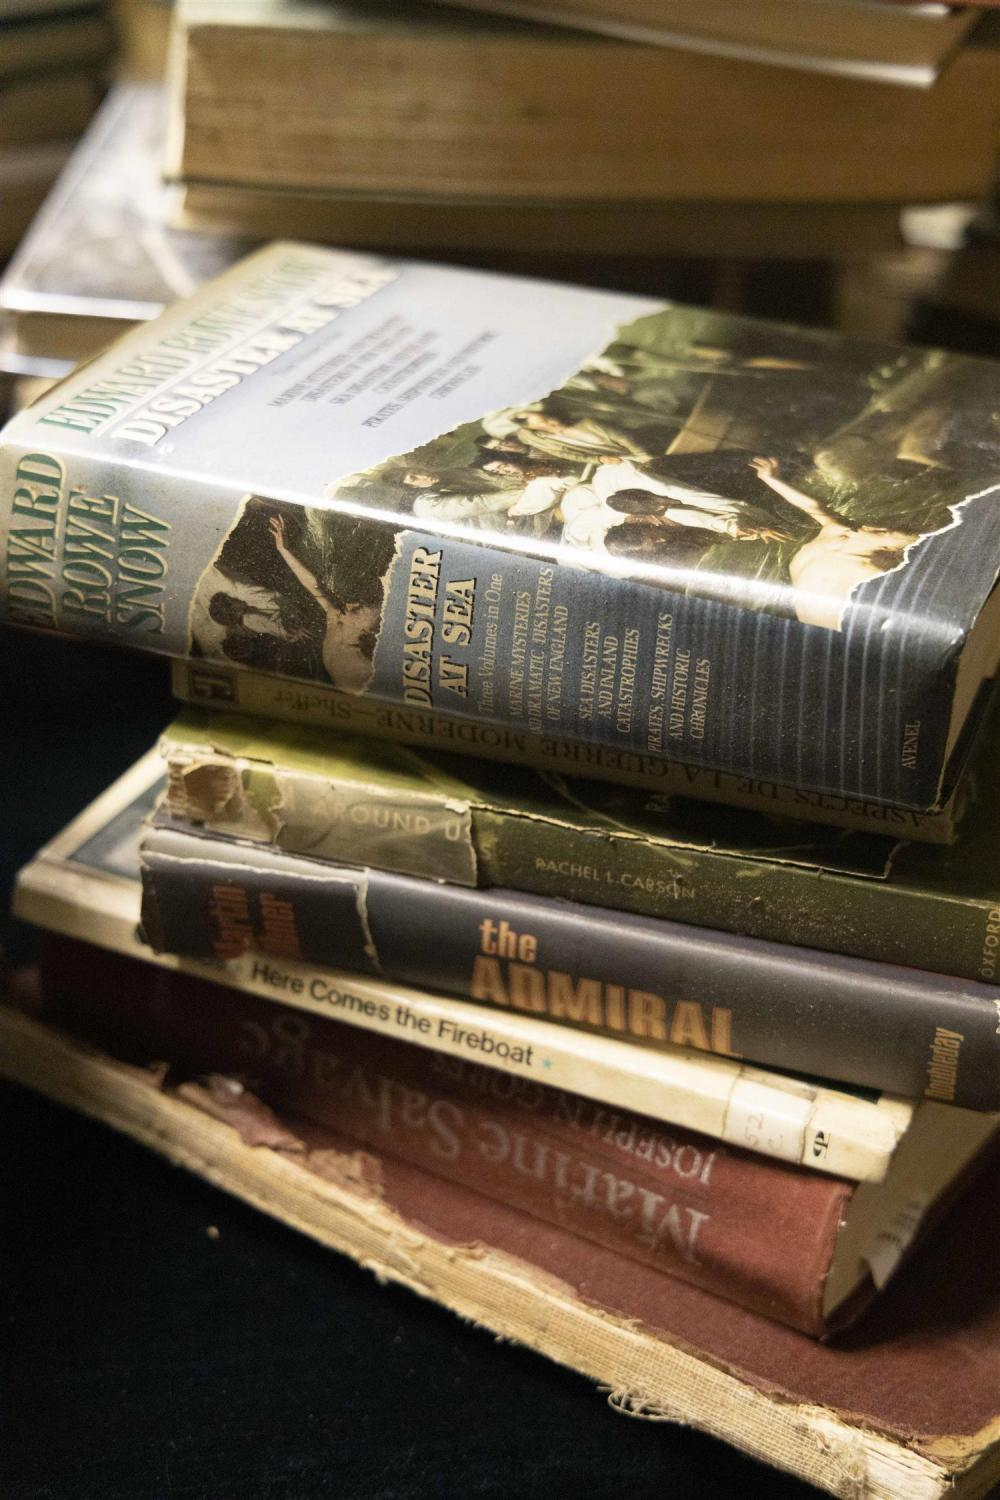 APPROX. 369 MARINE AND MILITARY RELATED BOOKS